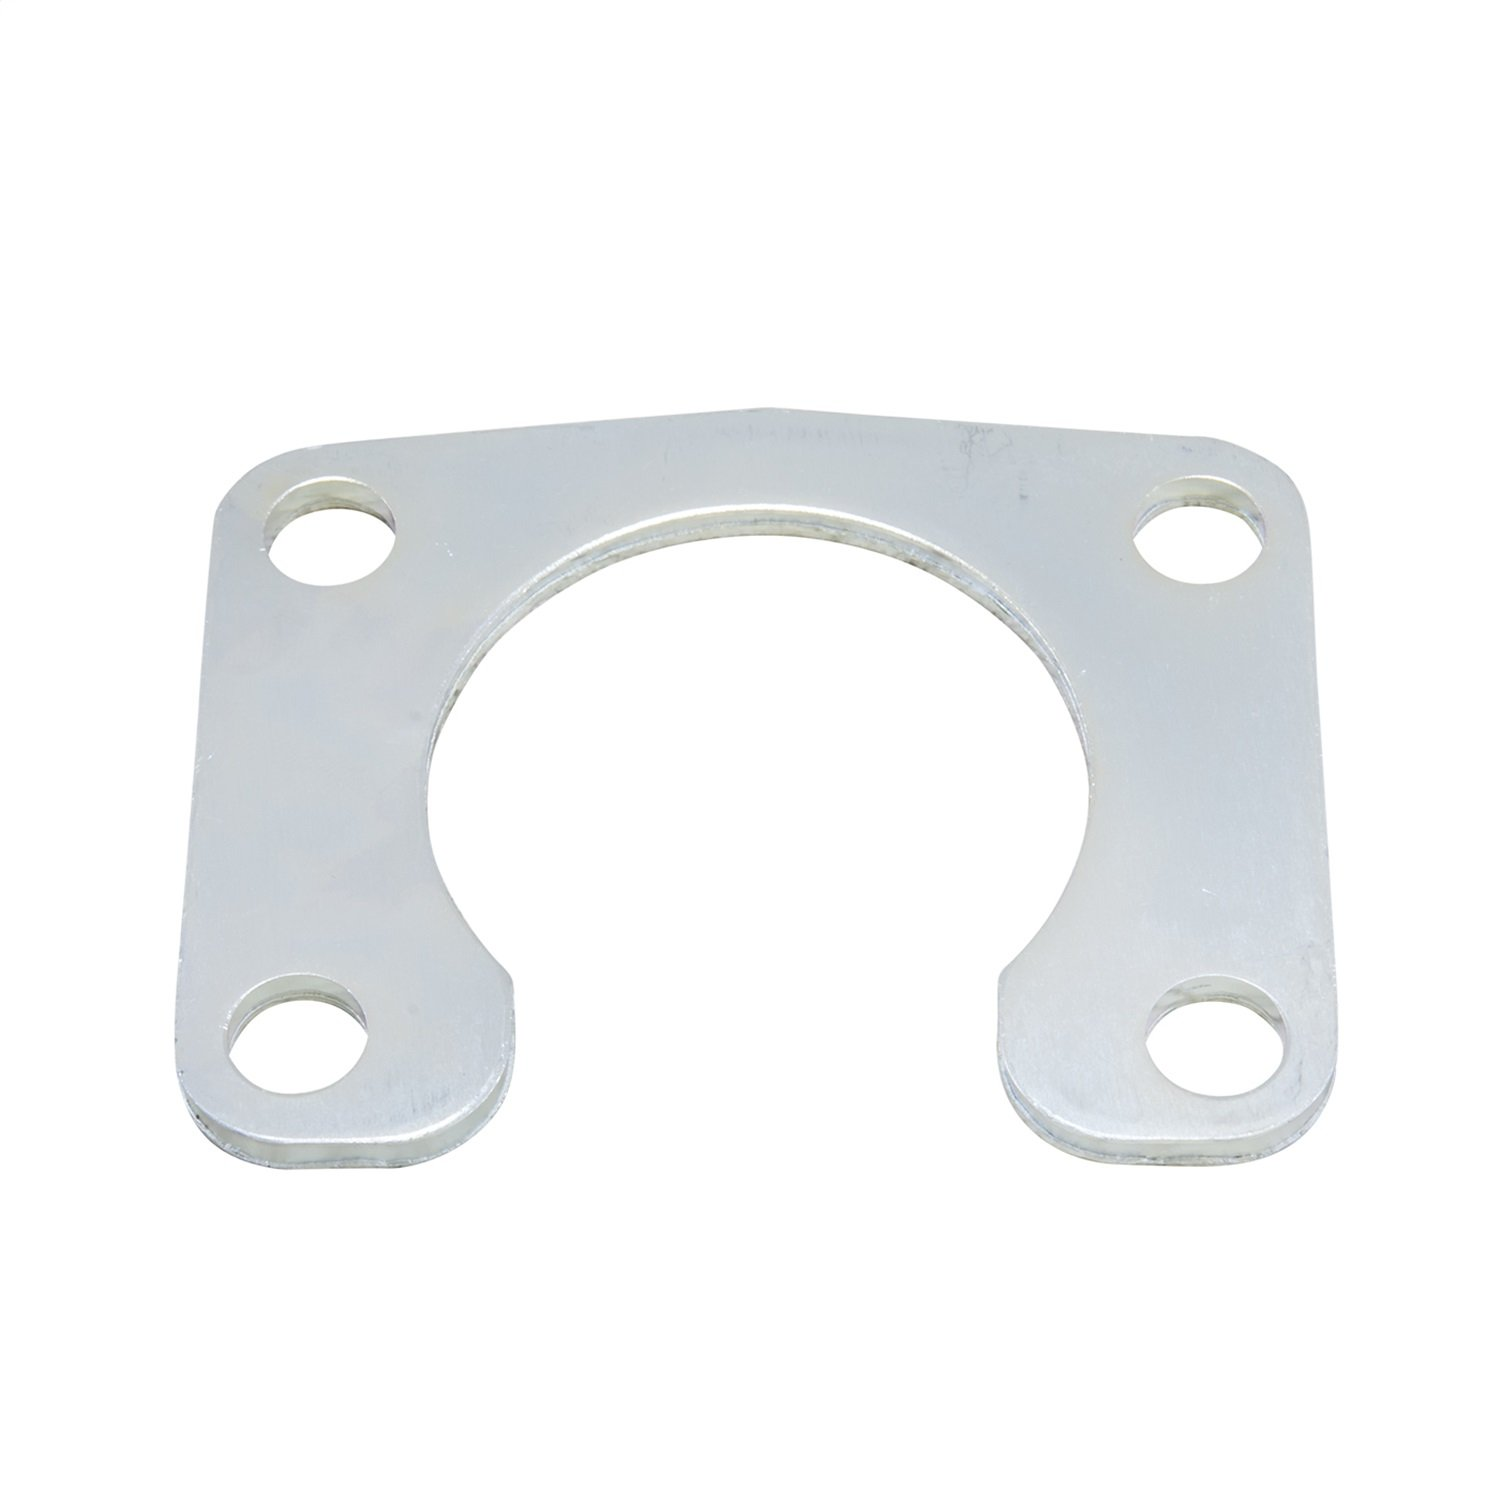 Yukon Gear & Axle (YSPRET-005) Axle Bearing Retainer for Ford 9 Differential